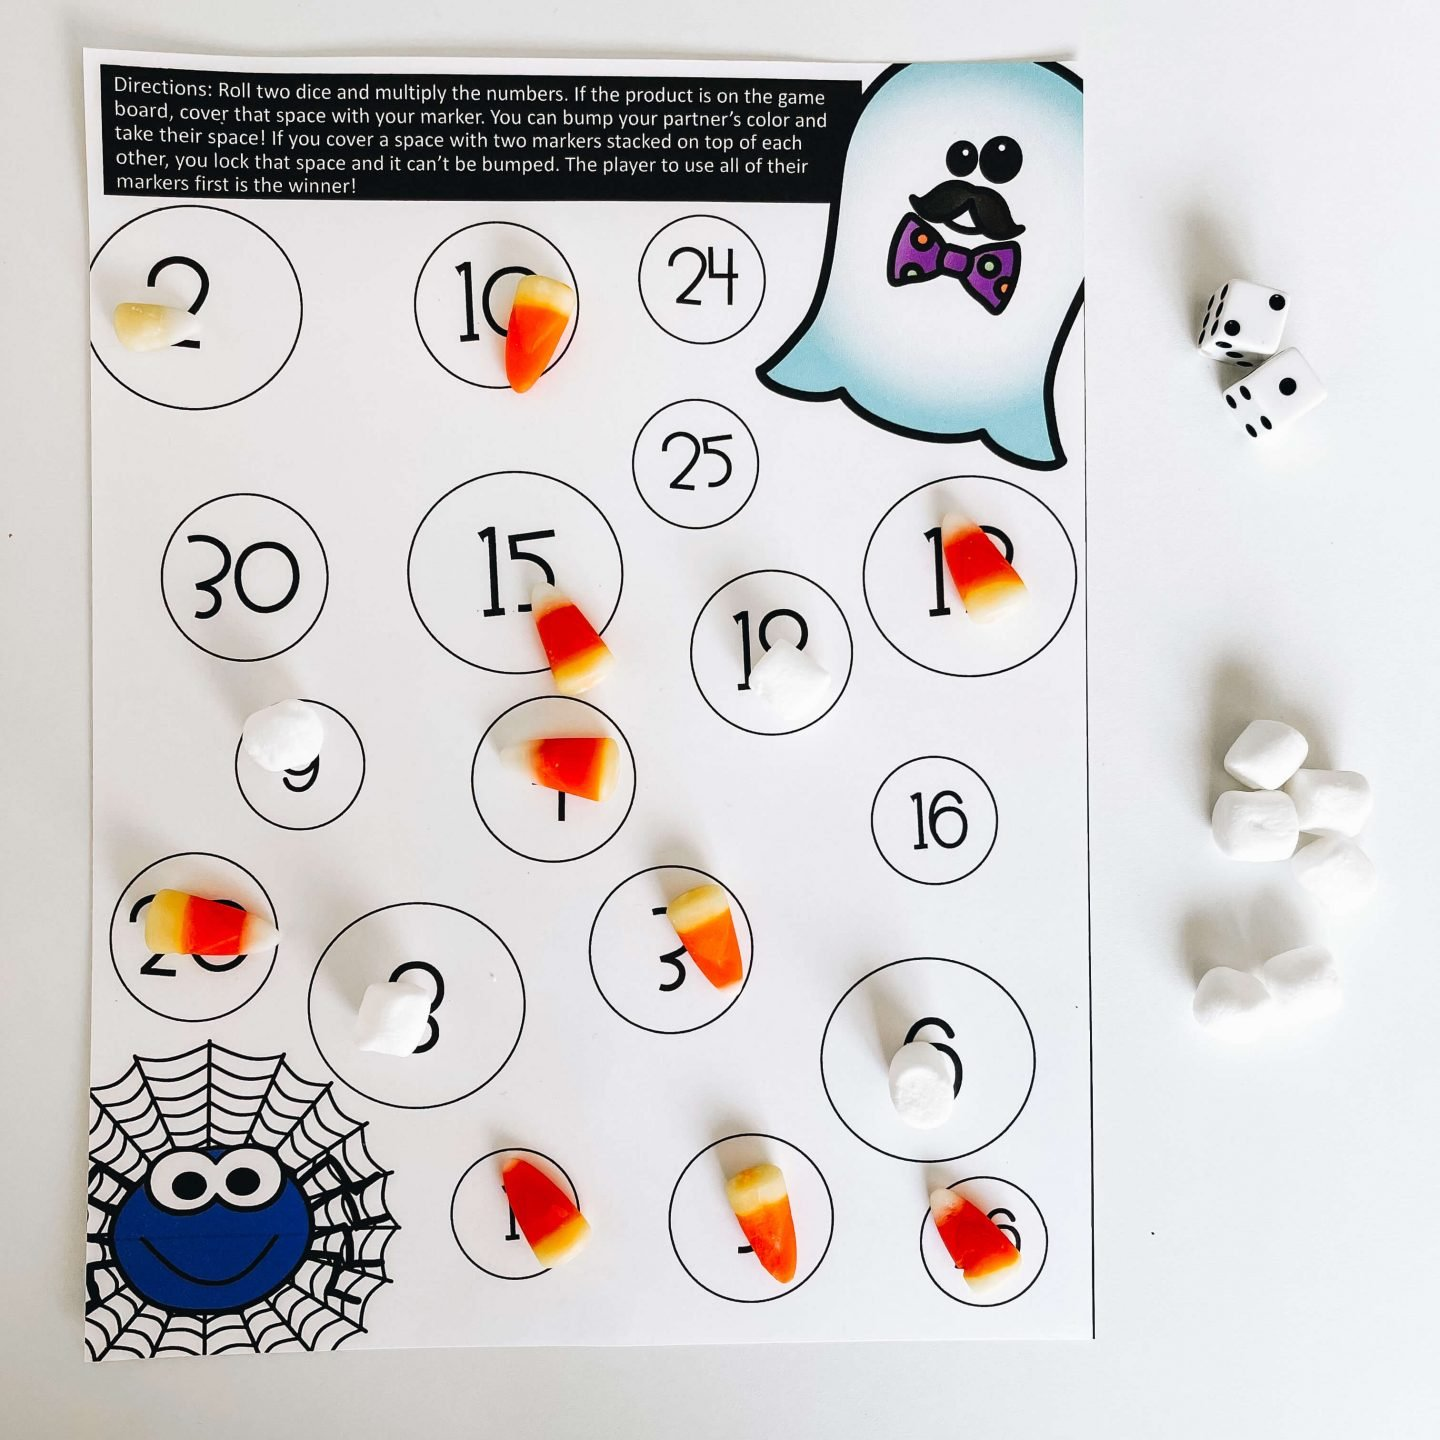 This Halloween multiplication activity is a great way to practice math facts and fluency in the classroom.